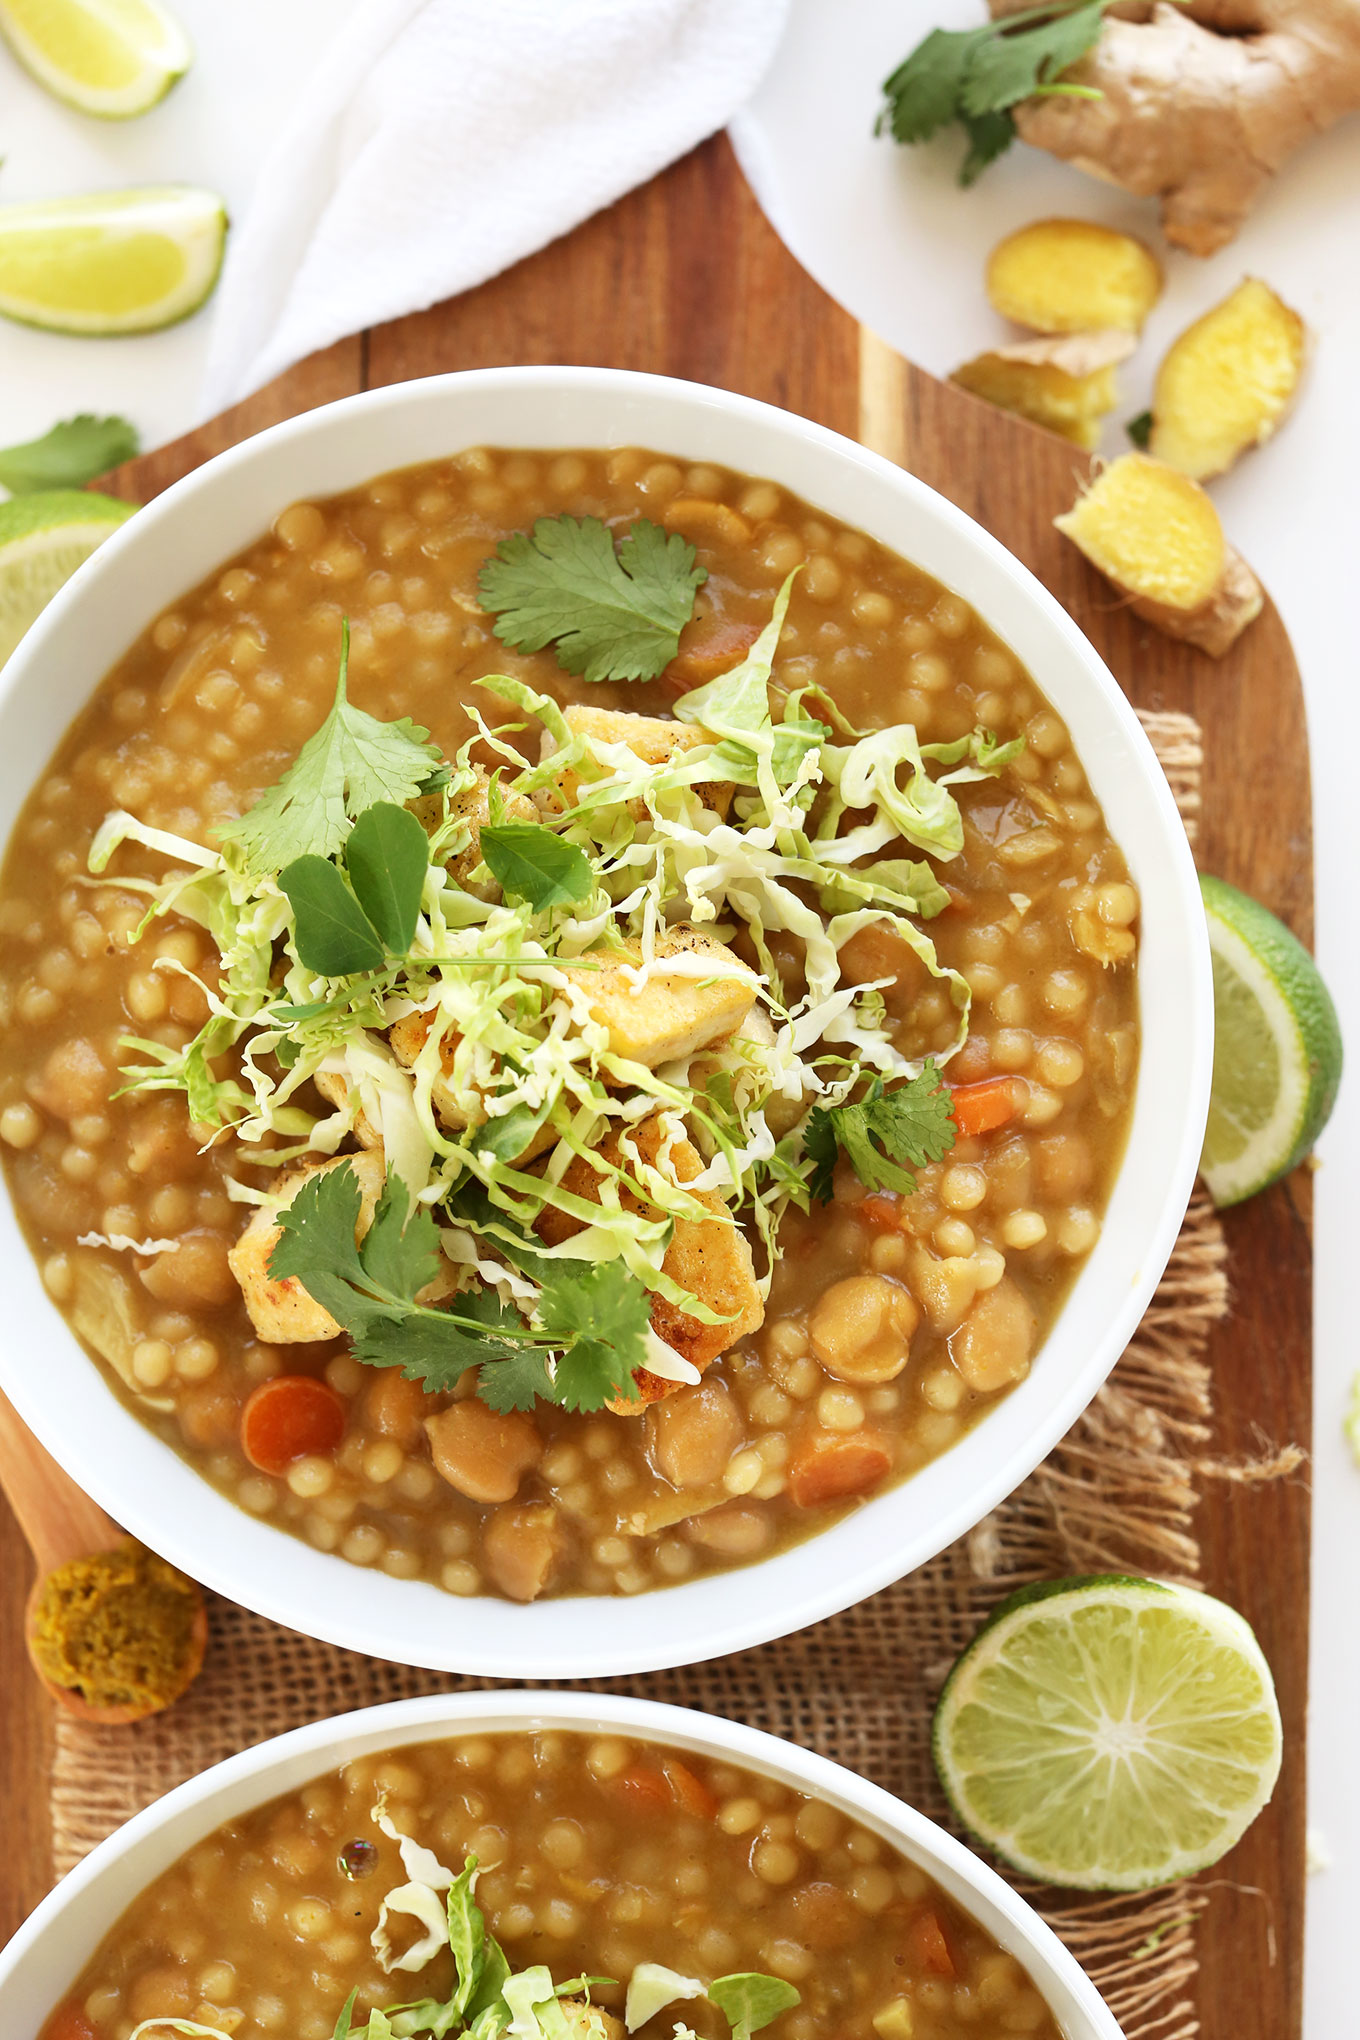 Bowl of Green Chickpea Curry for a quick and healthy vegan meal